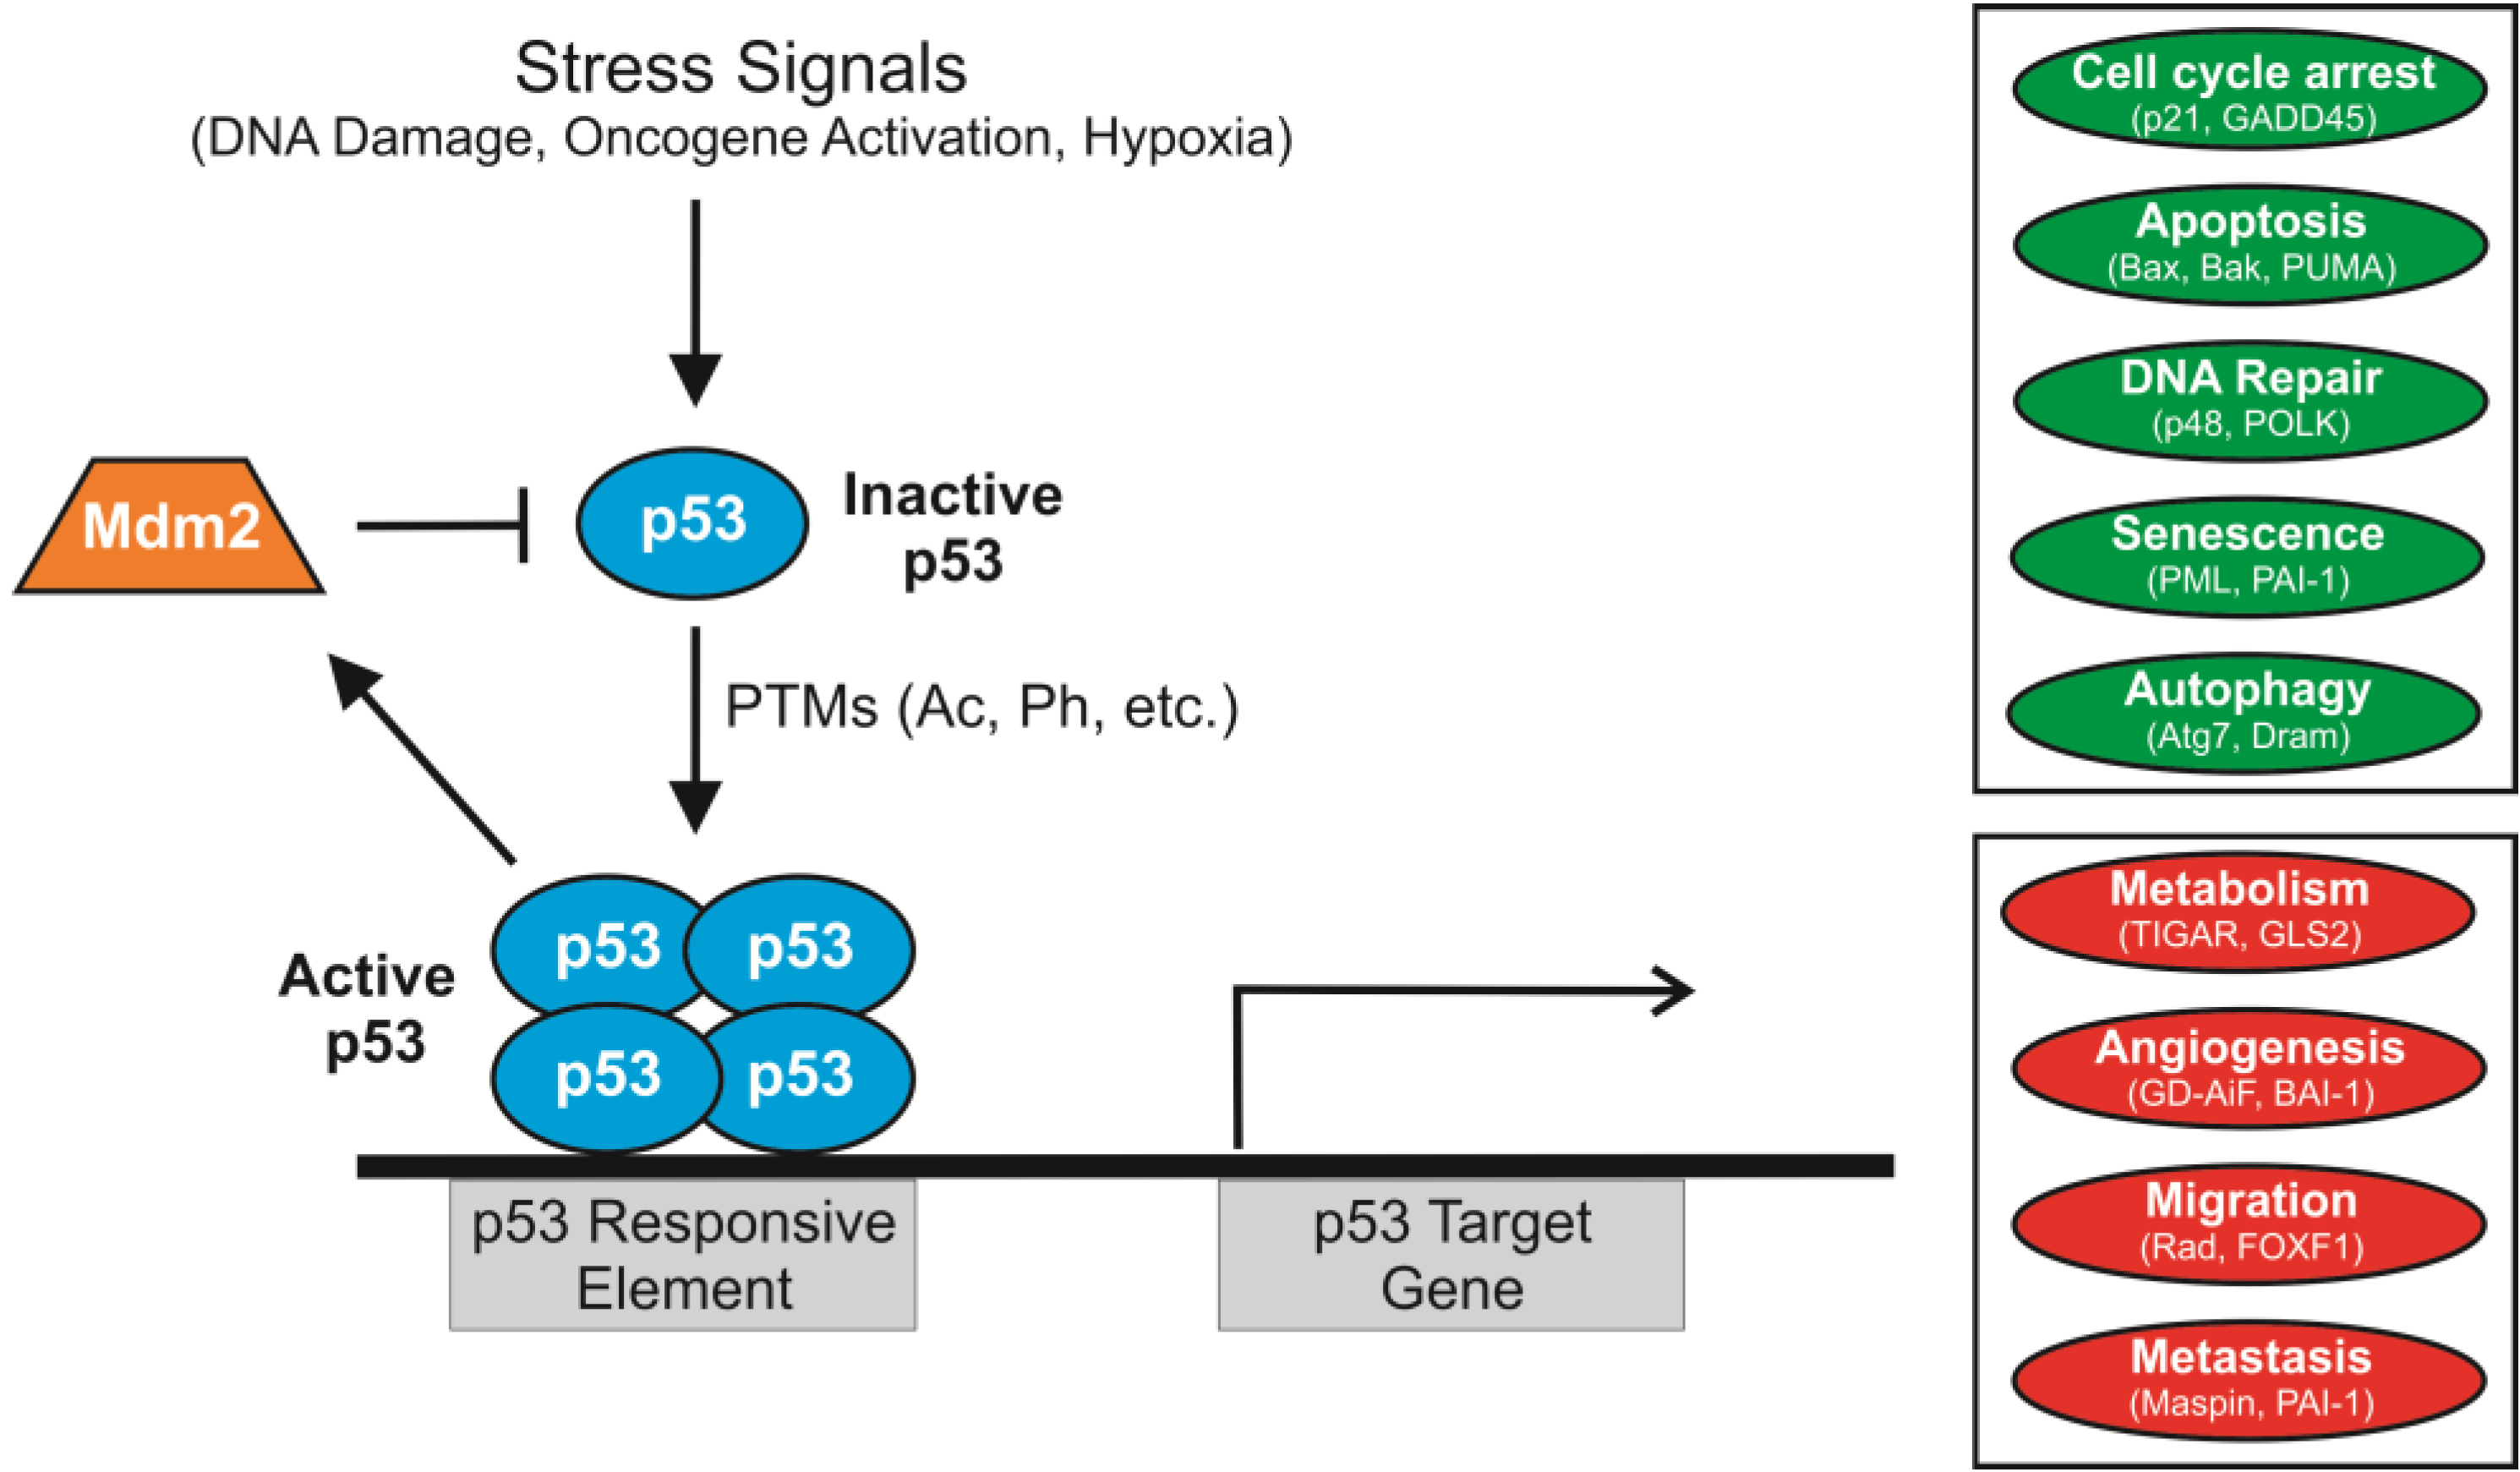 The impact of acetylation and deacetylation on the p53 pathway